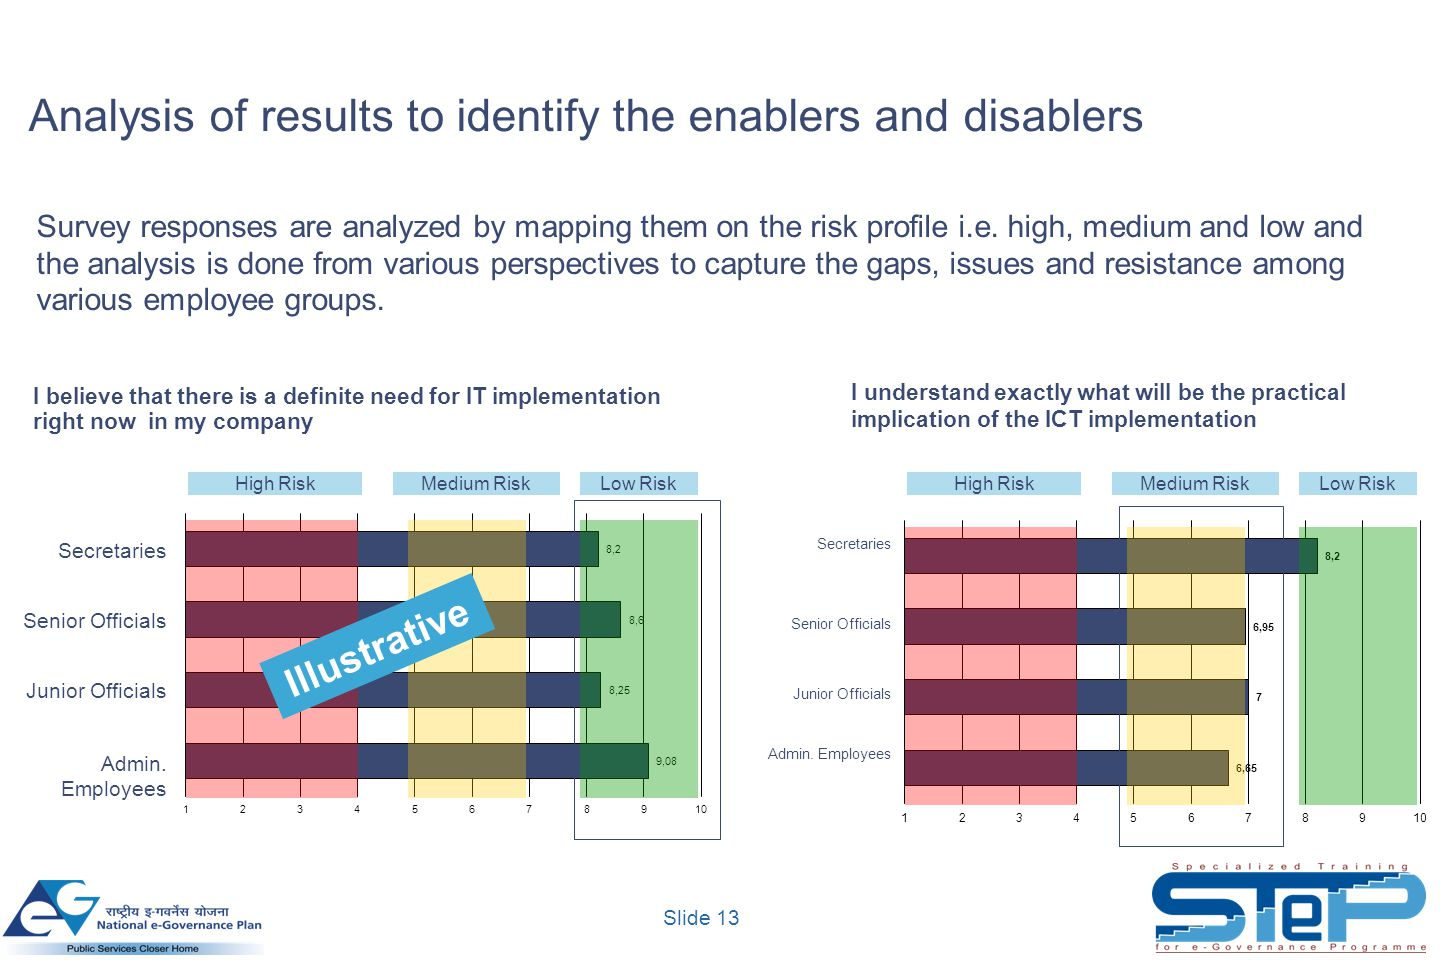 Analysis of results to identify the enablers and disablers